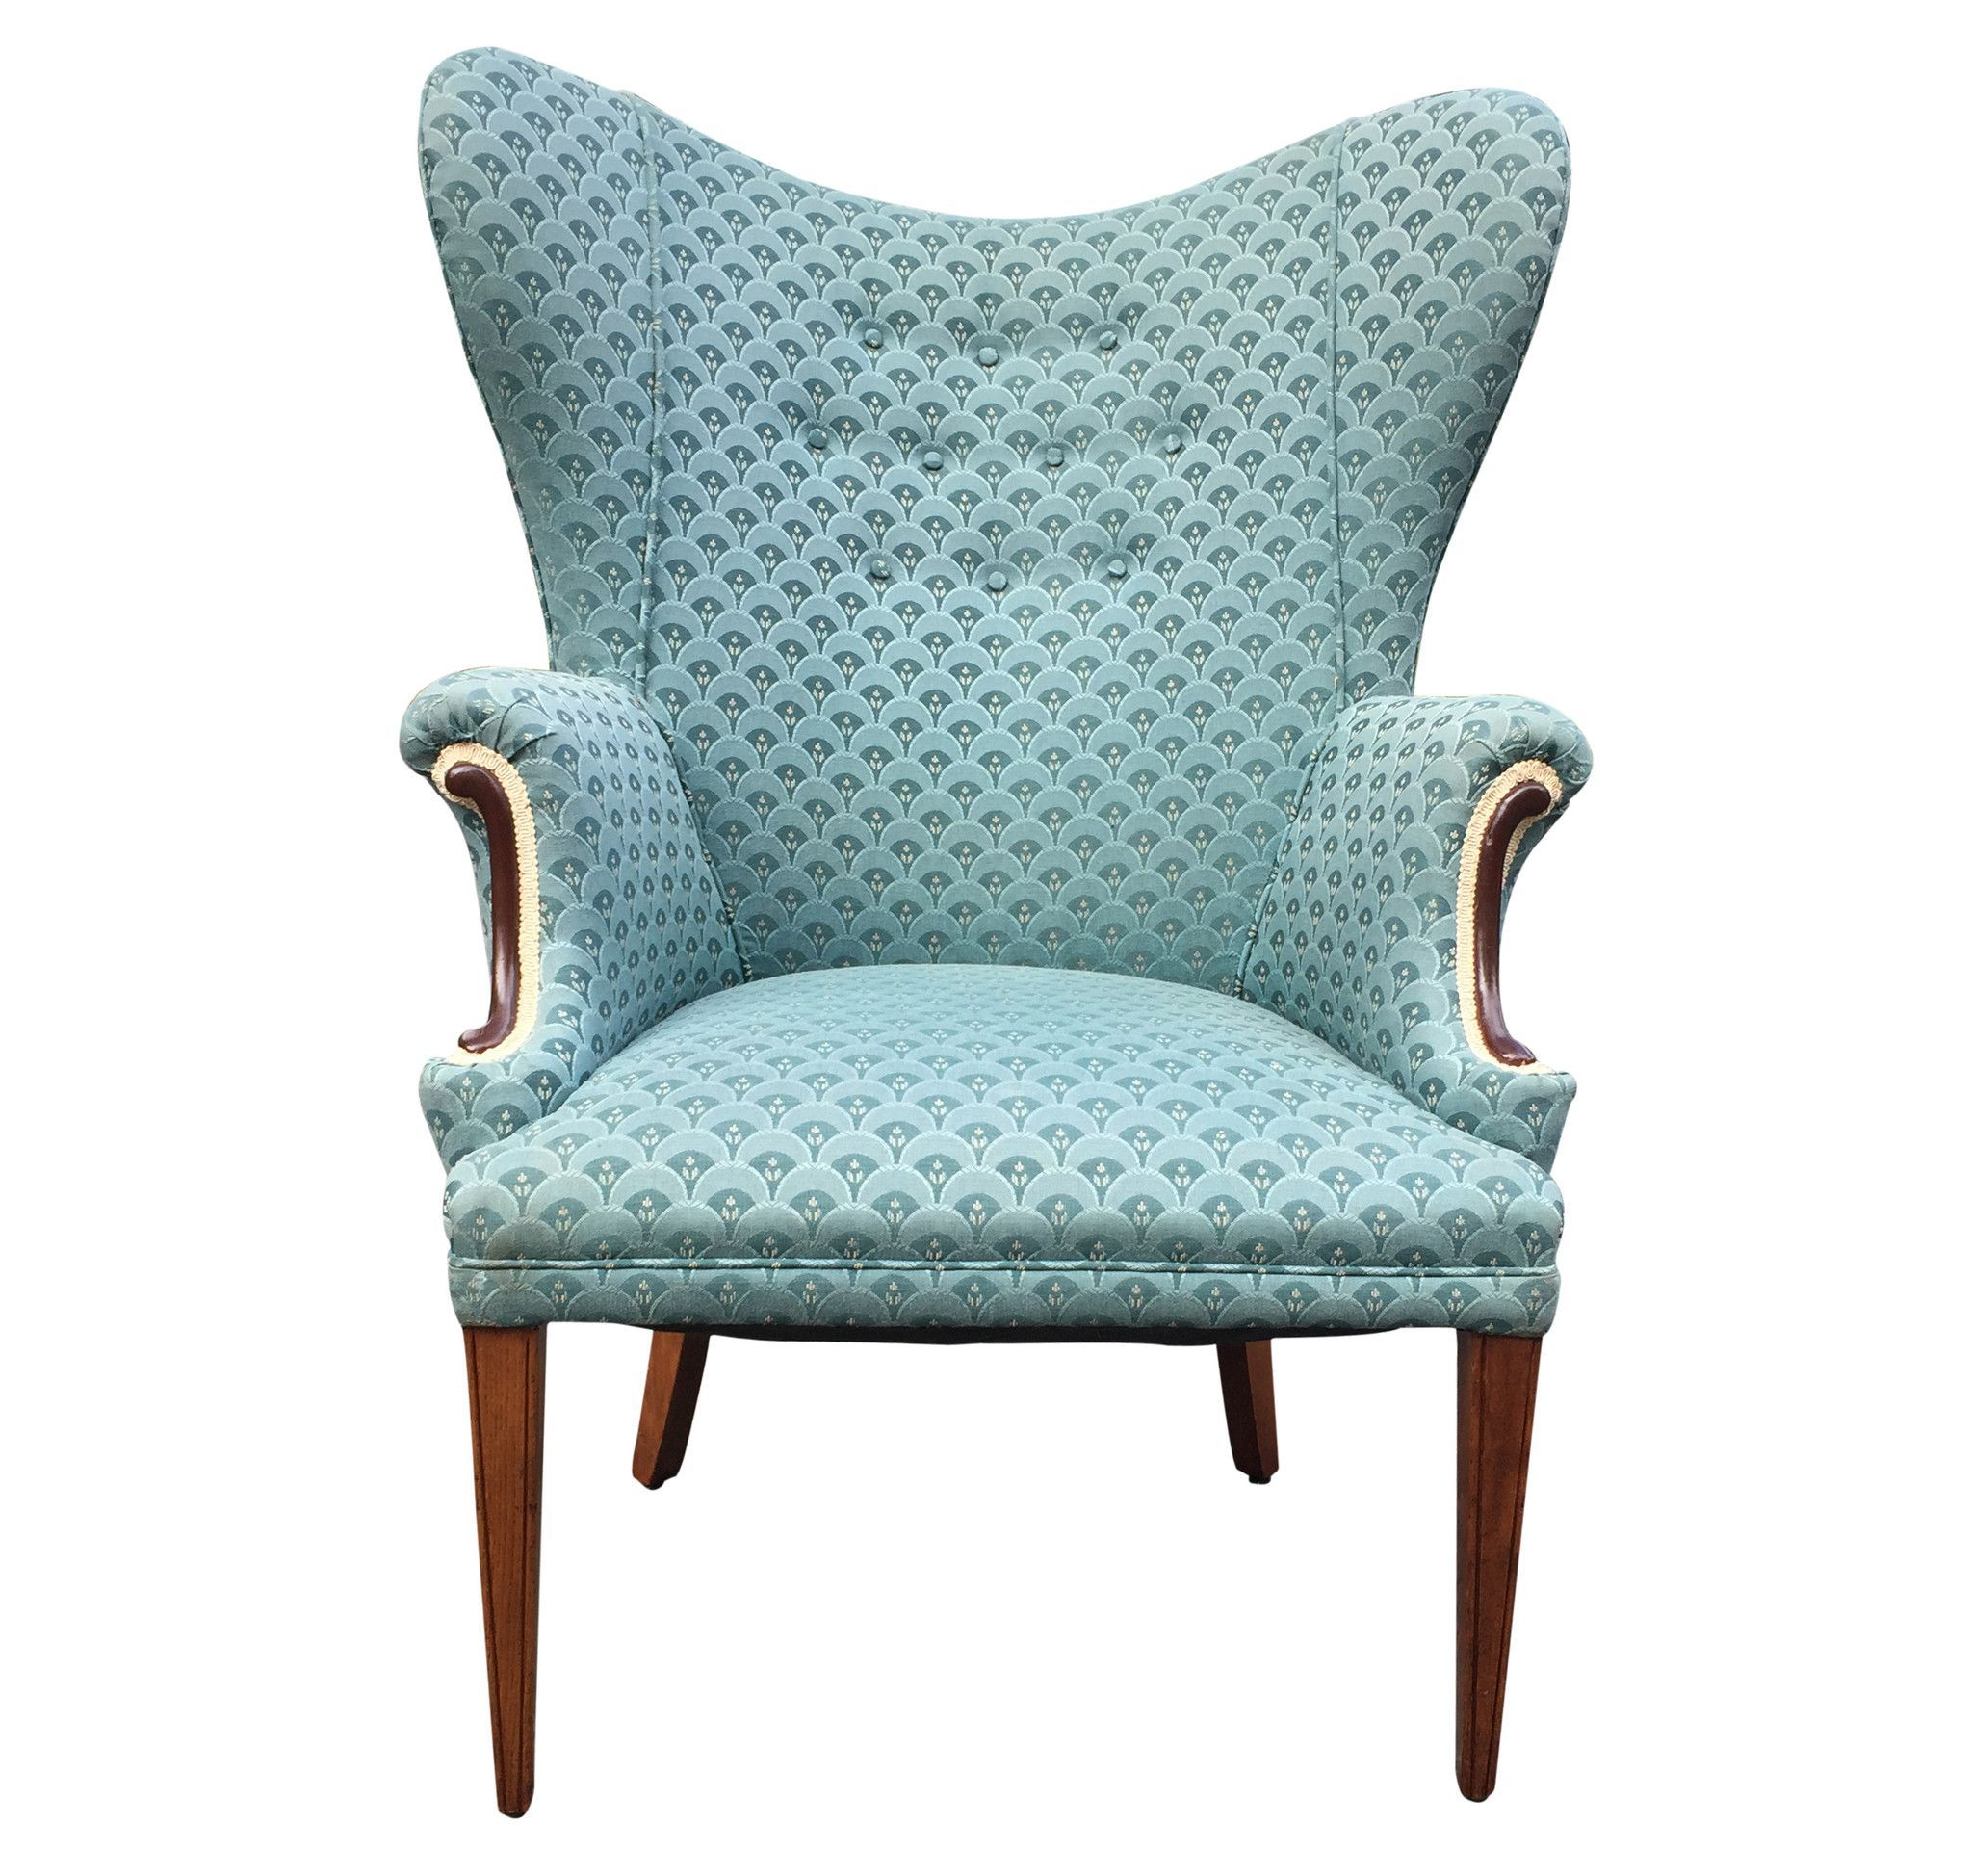 Enjoyable 1950S Wing Back Chair Products Chair Accent Chairs Pabps2019 Chair Design Images Pabps2019Com